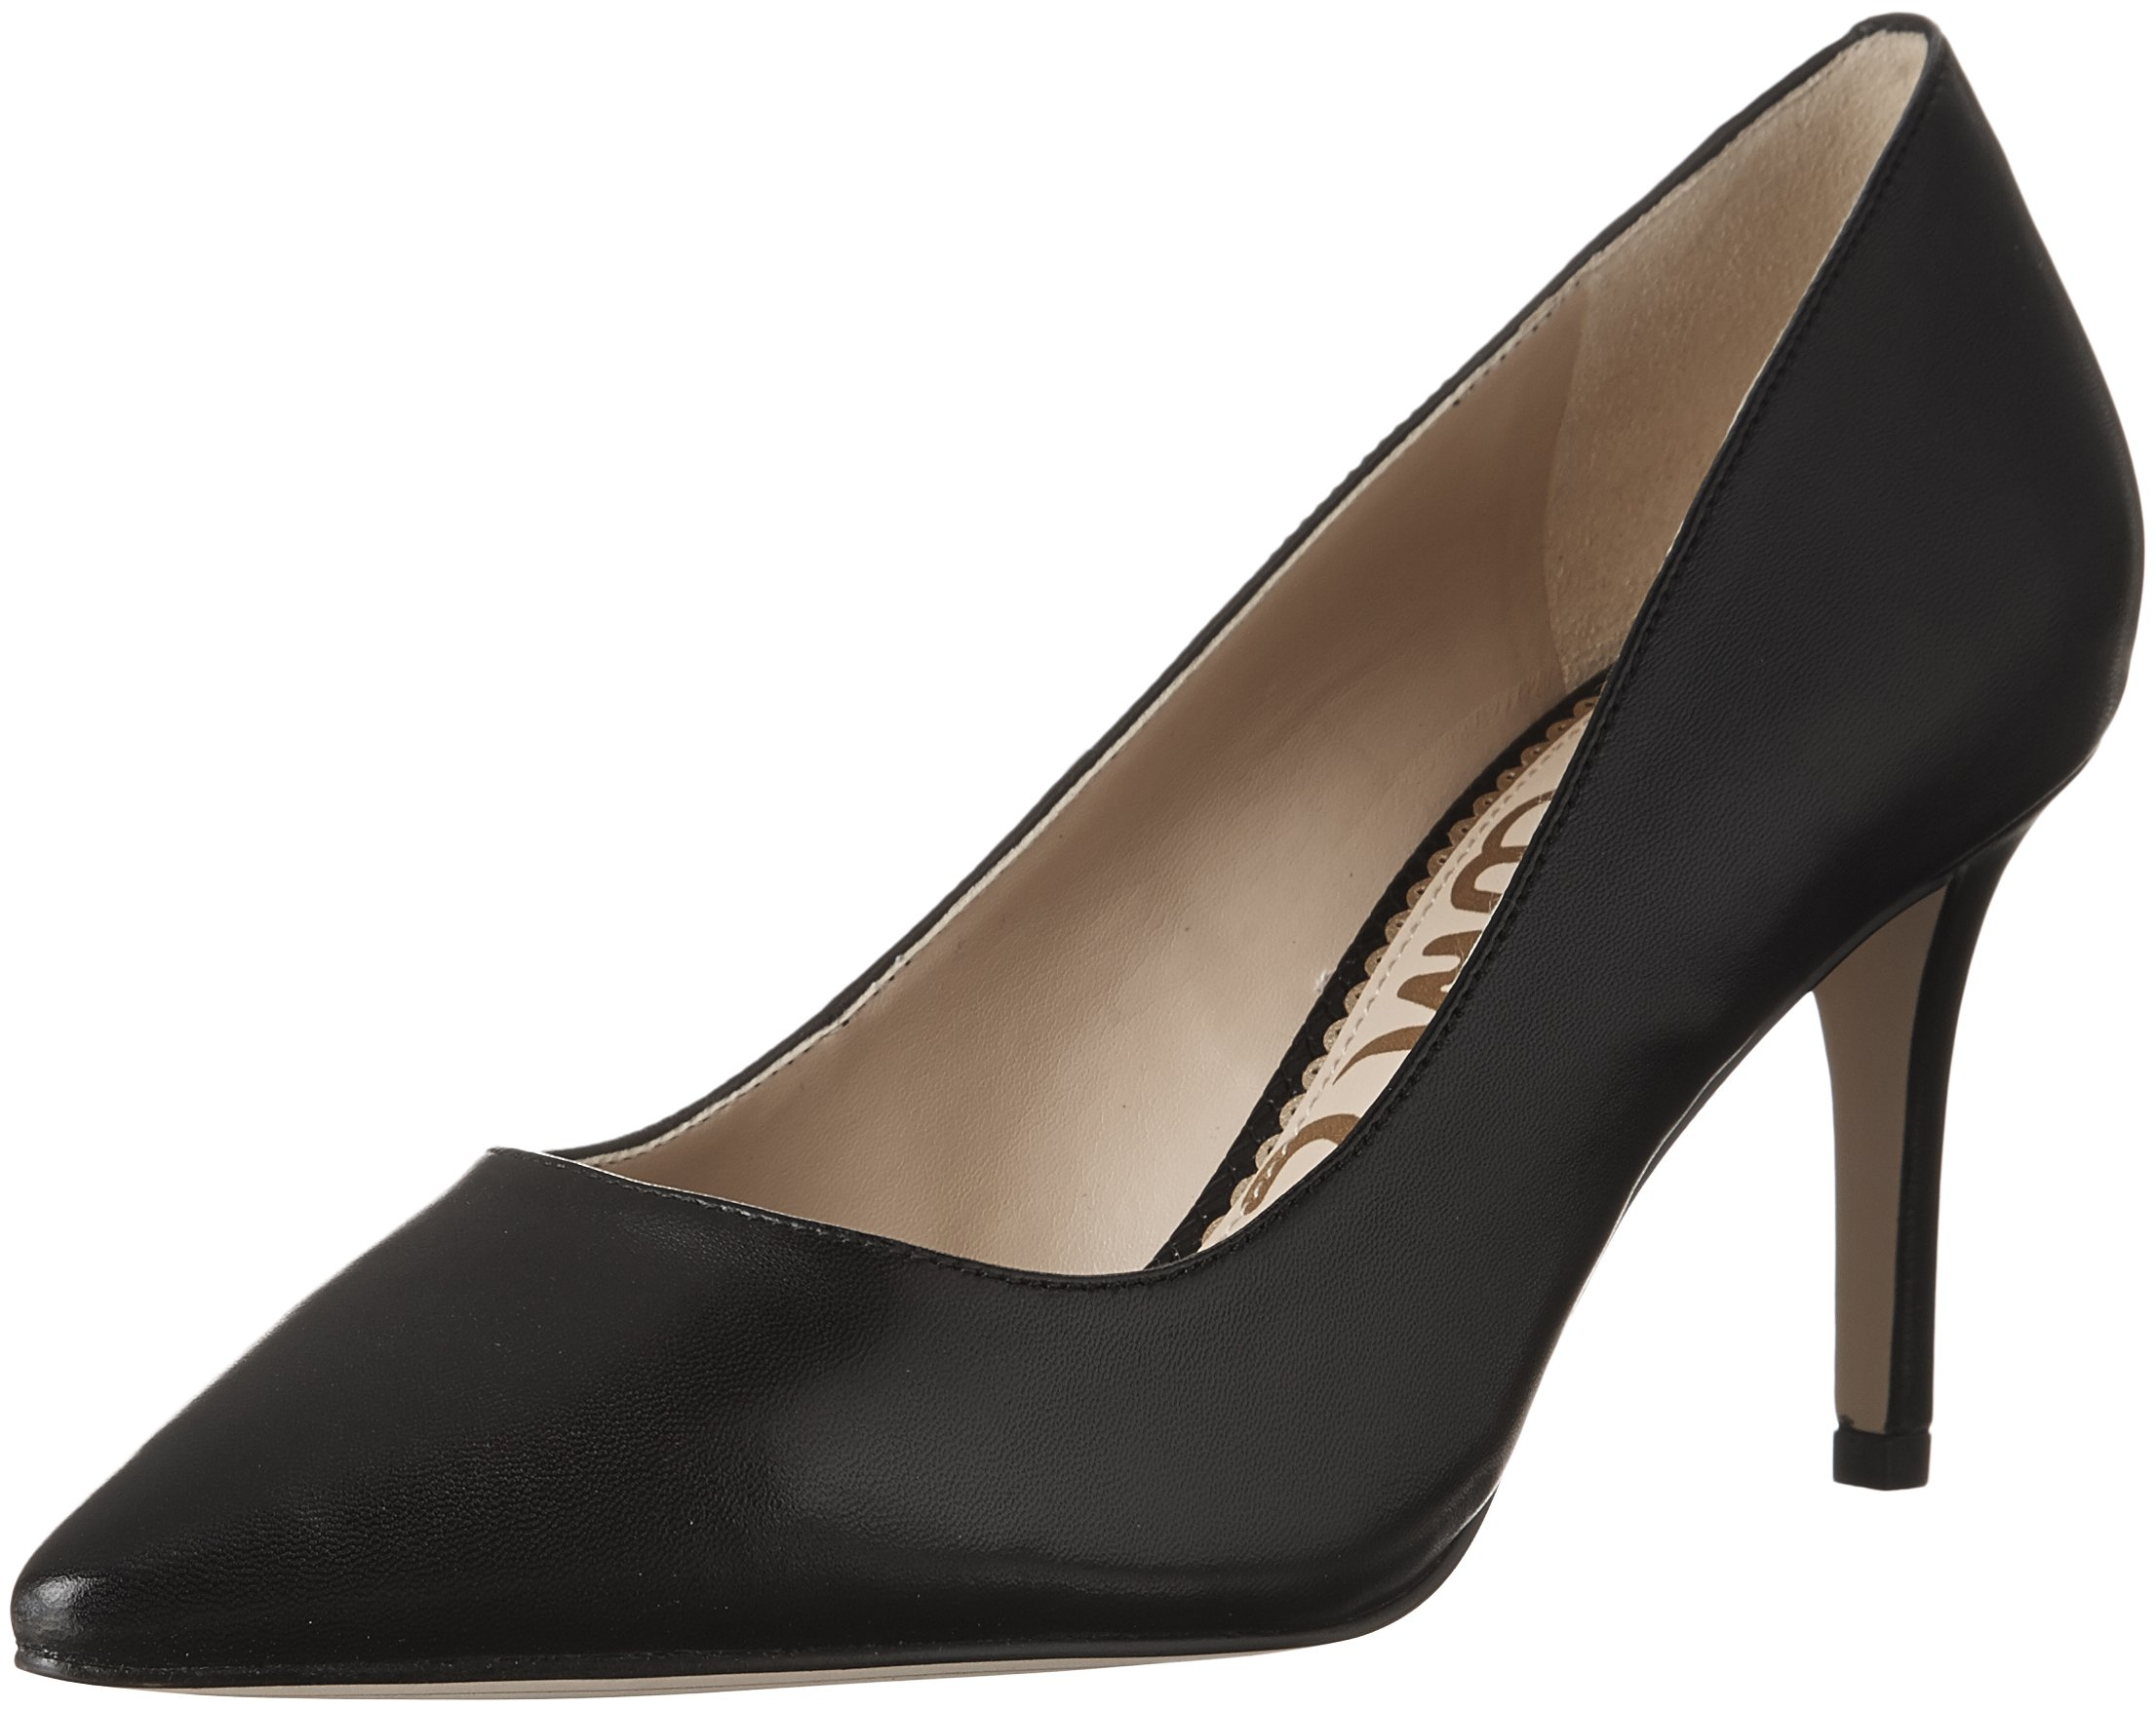 Sam Edelman Women's Tristan Pump, Black Leather, 6 Medium US by Sam Edelman